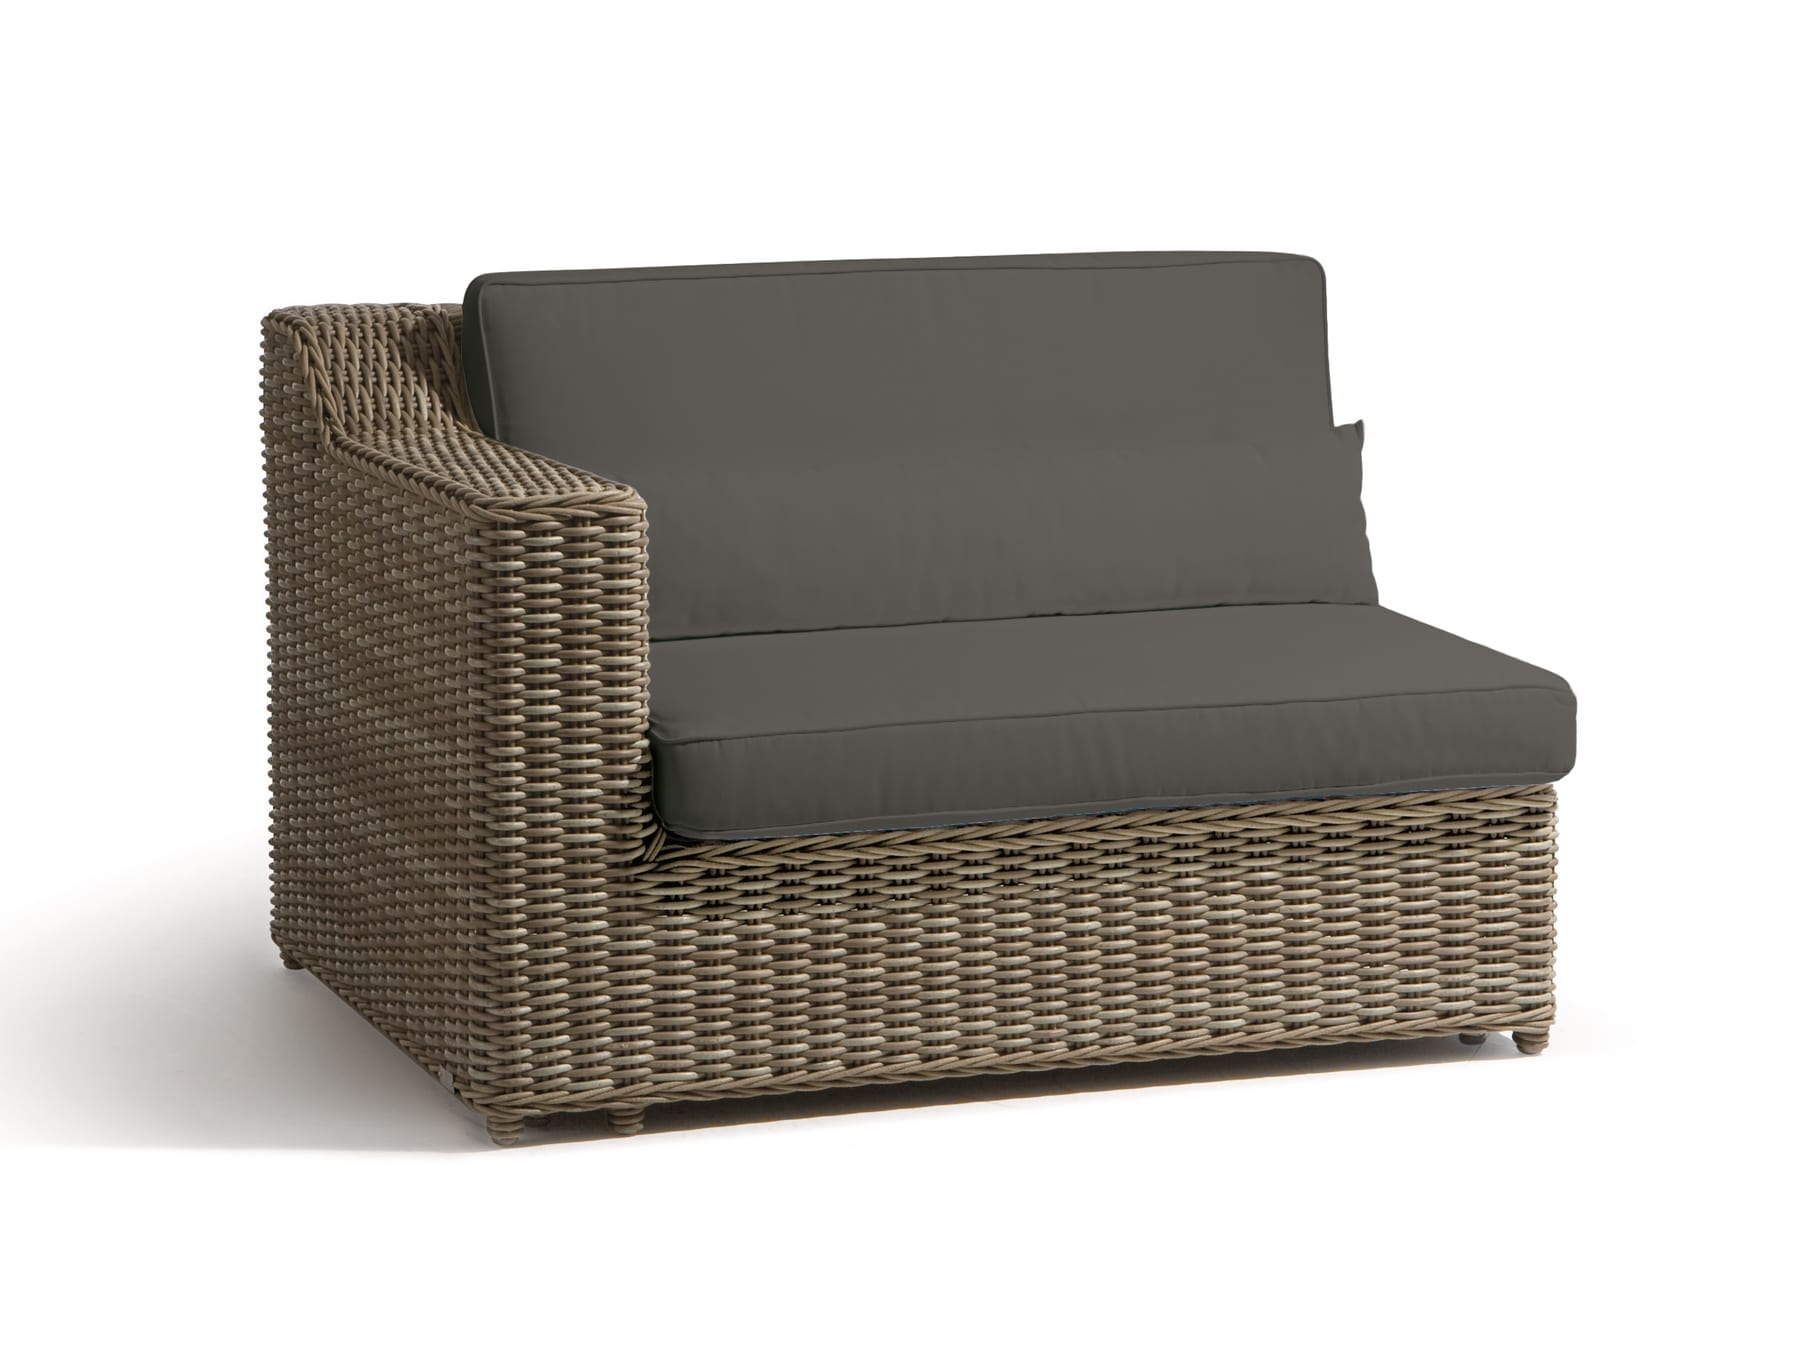 Patio furniture cushions san diego pictures for Affordable furniture san diego